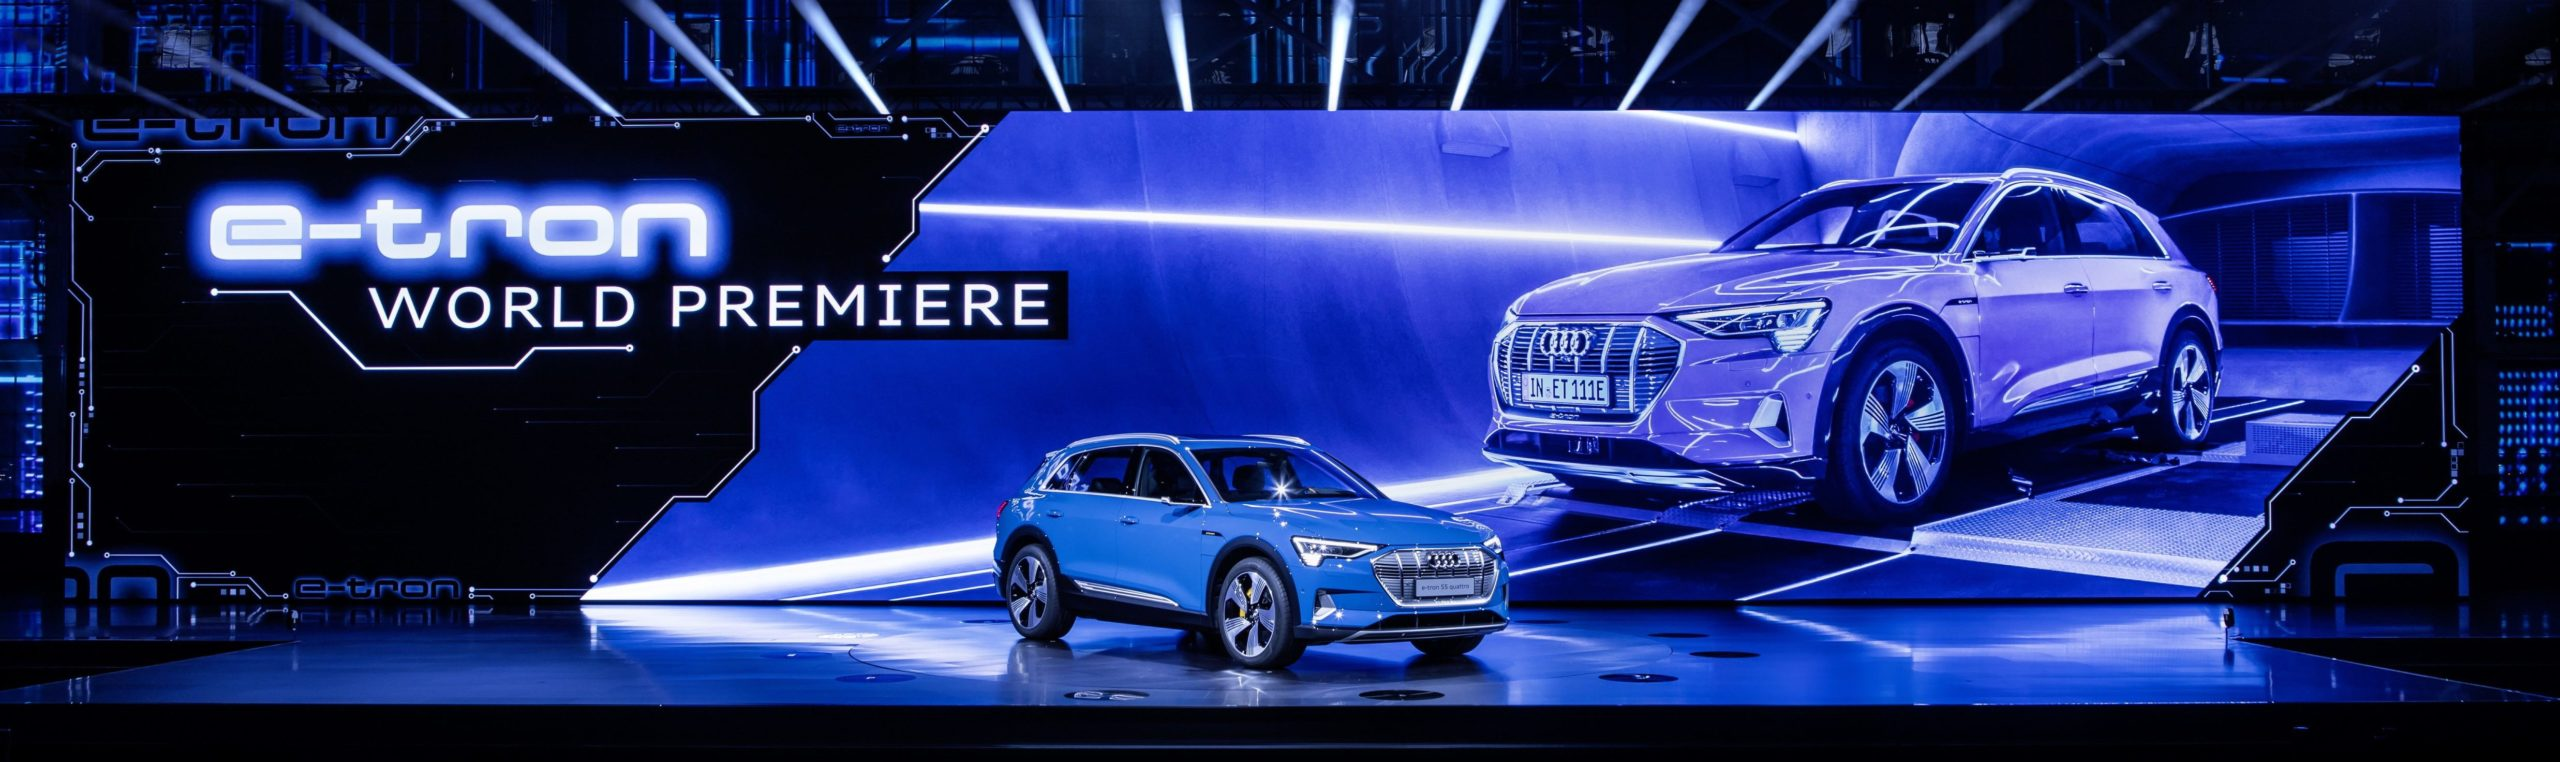 Photo of the world premiere of the Audi e-tron electric vehicle.